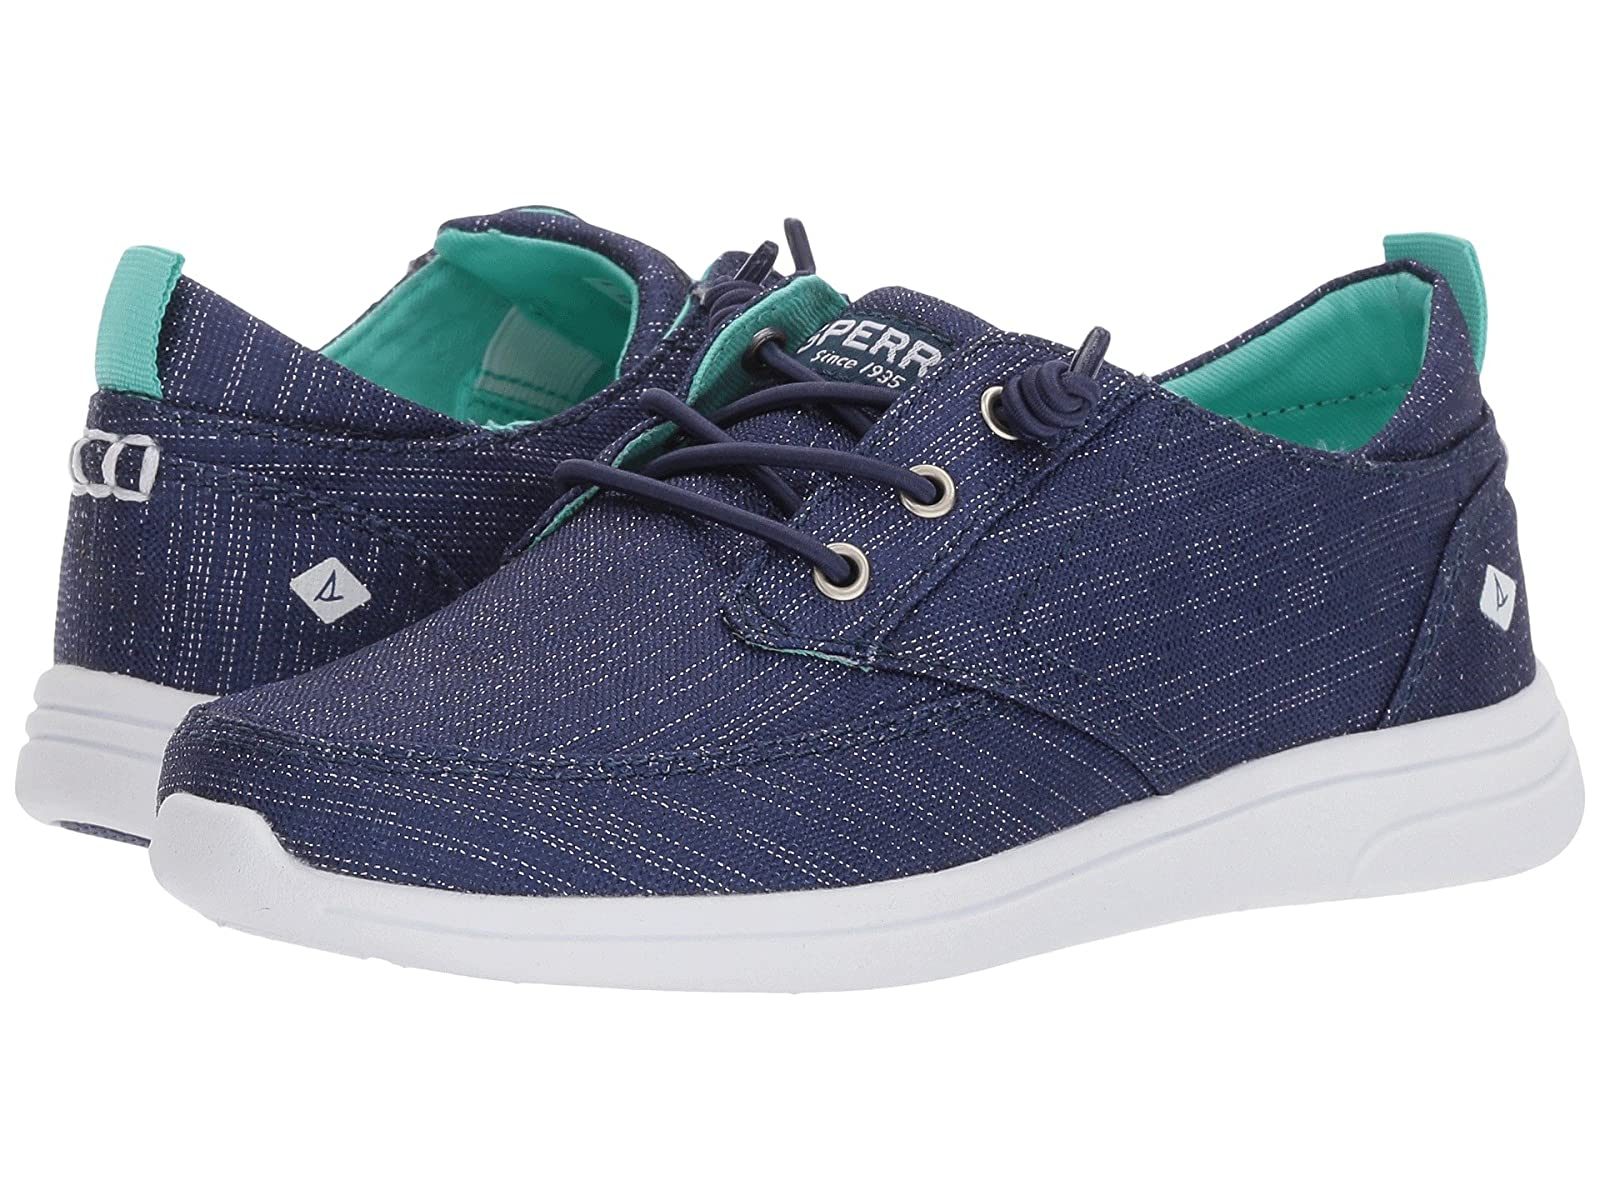 Sperry Kids Baycoast (Little Kid/Big Kid)Cheap and distinctive eye-catching shoes